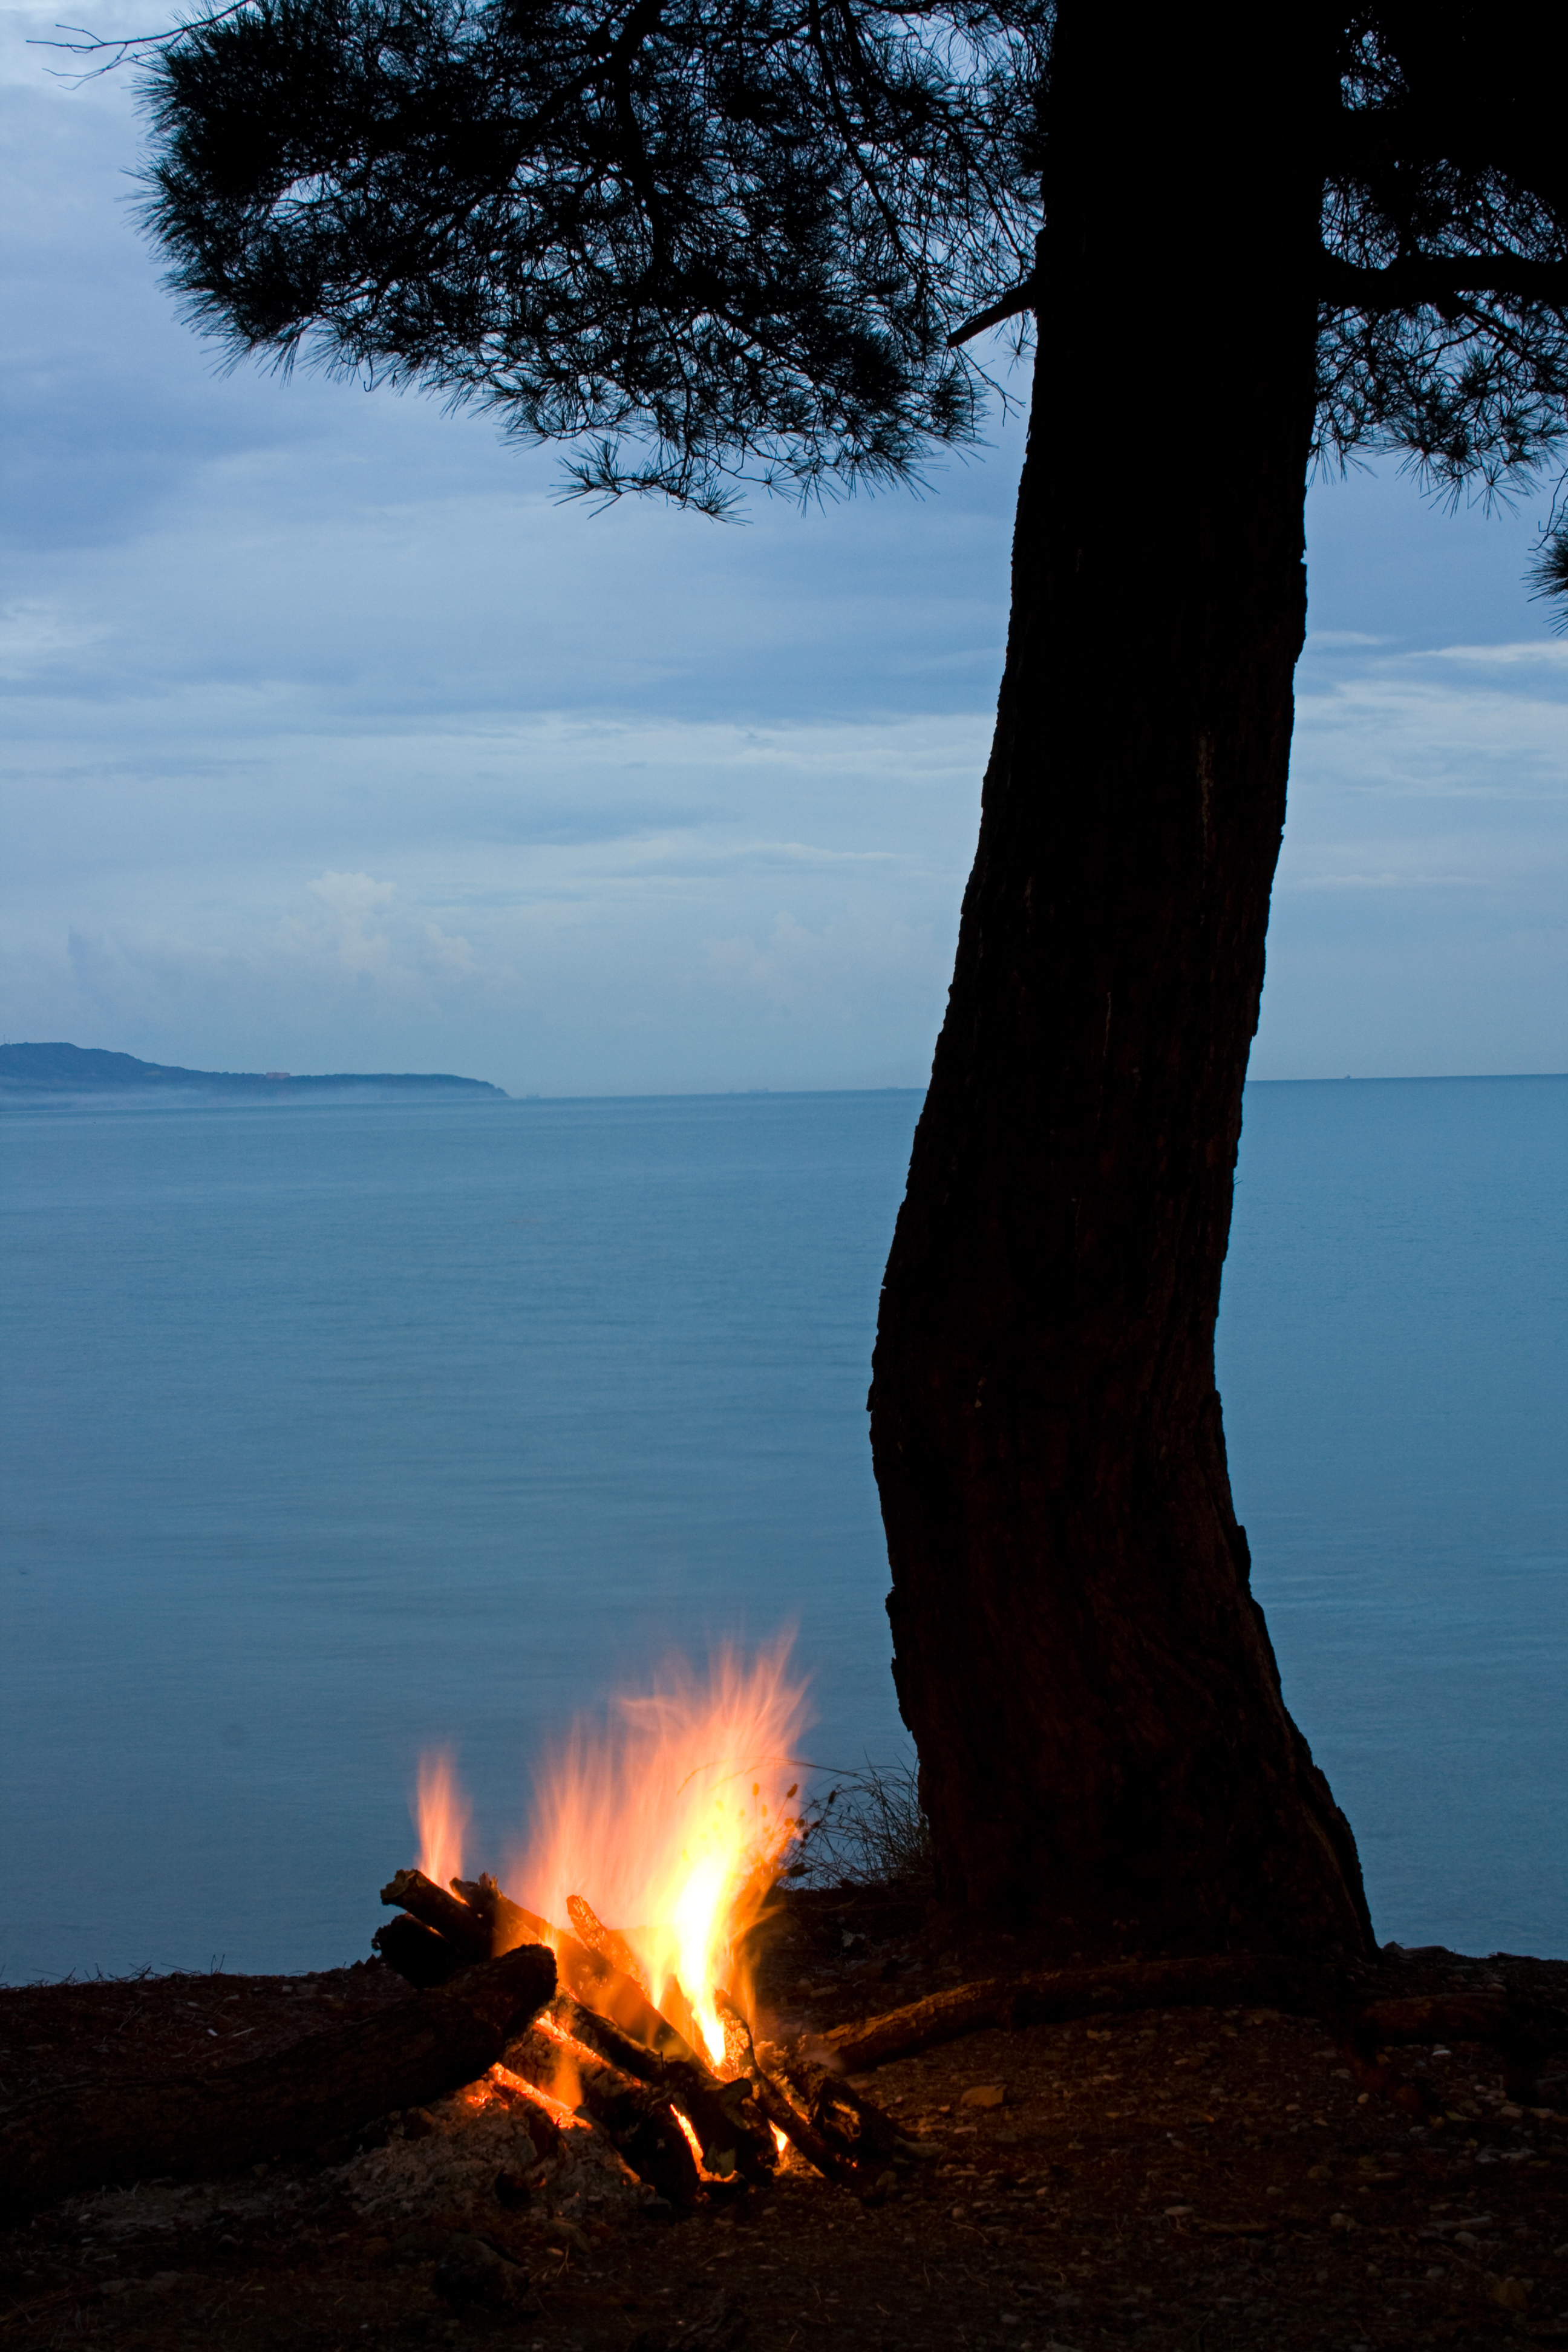 night scene: tree silhouette and campfire on sea background